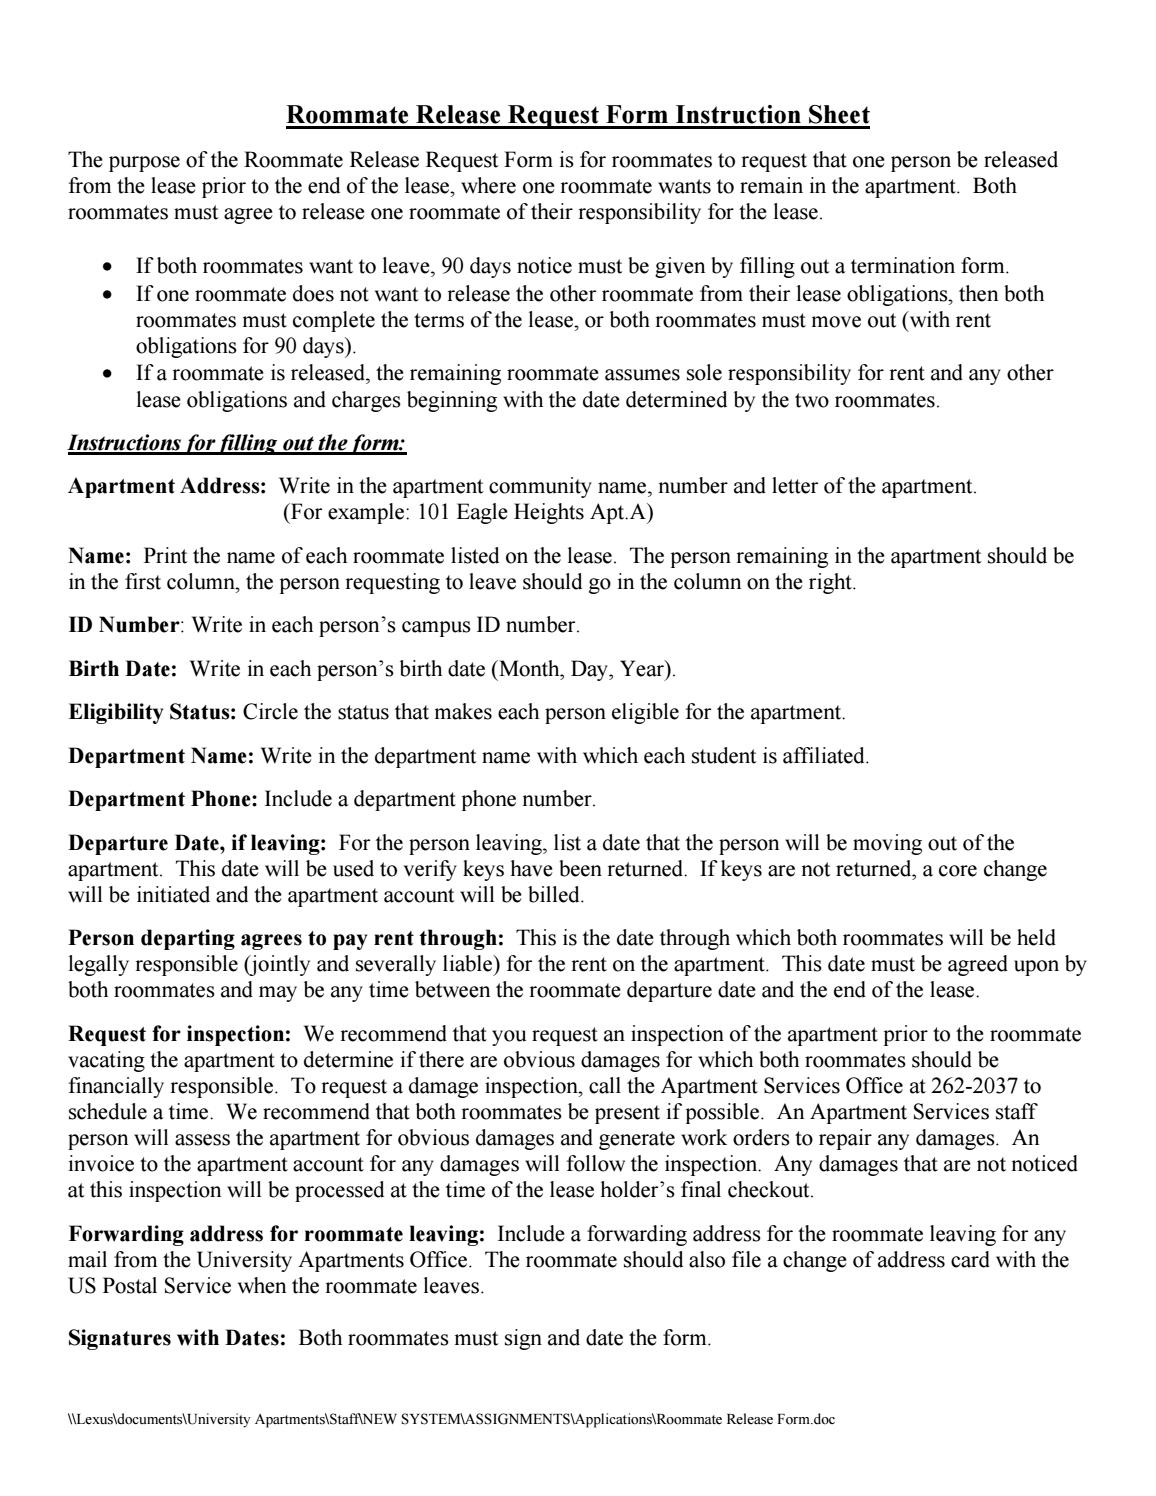 university apartments roommate release form by uw madison